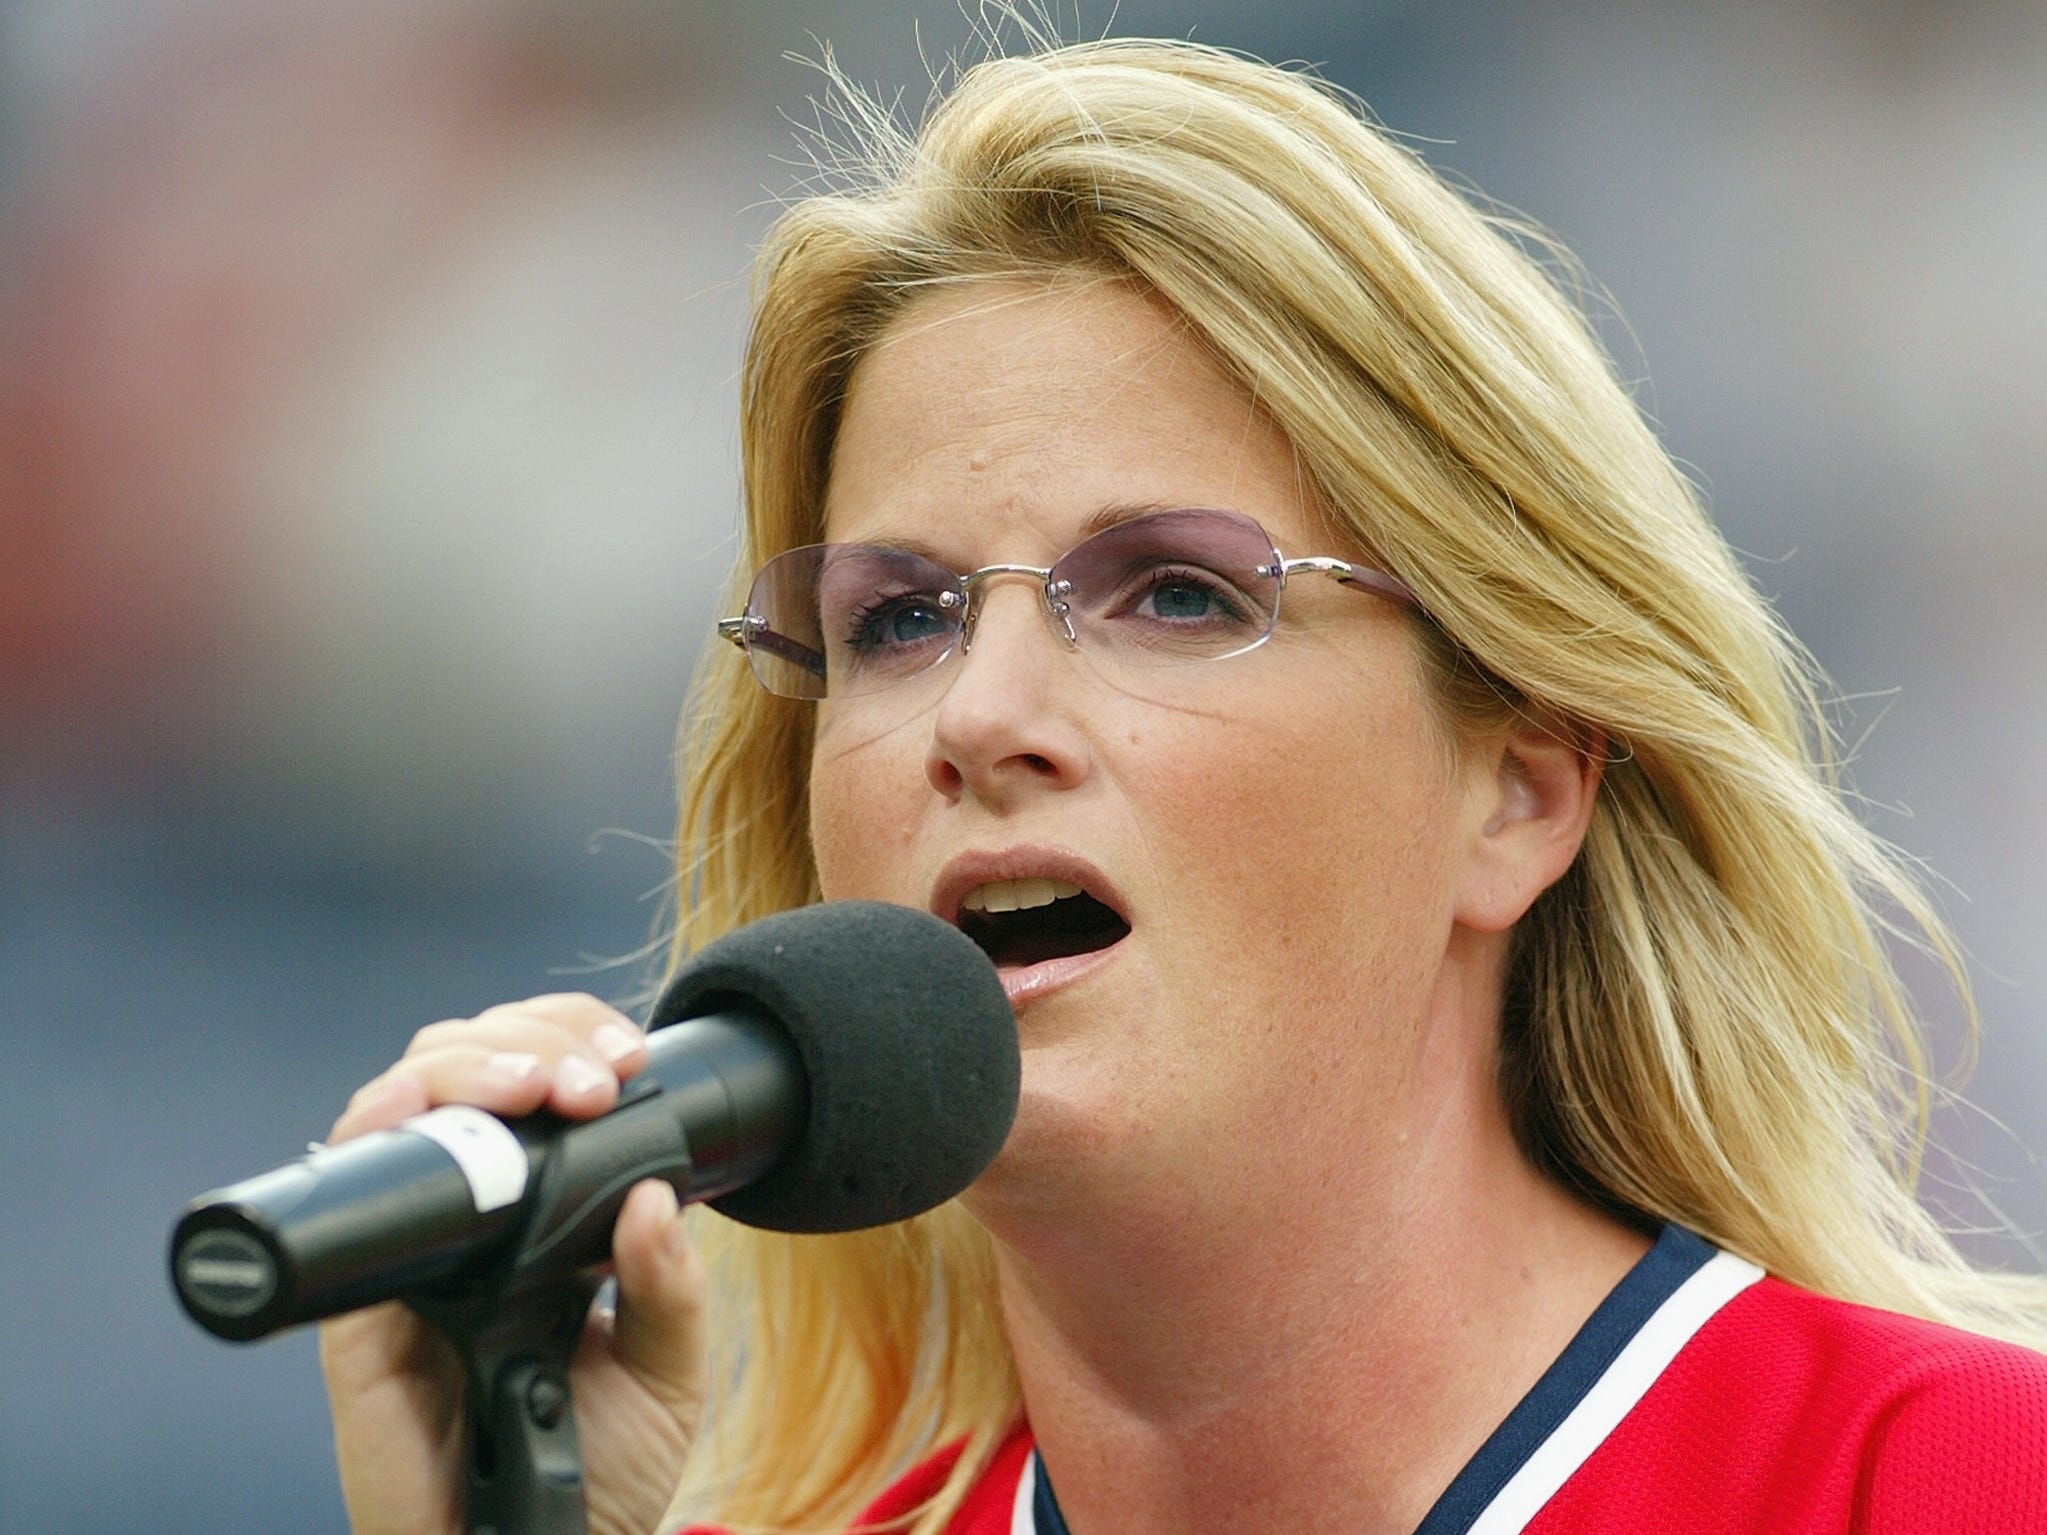 Trisha Yearwood sings the National Anthem prior to the start of the game between the Florida Marlins and the Atlanta Braves on July 23, 2003 at Turner Field in Atlanta, Georgia.